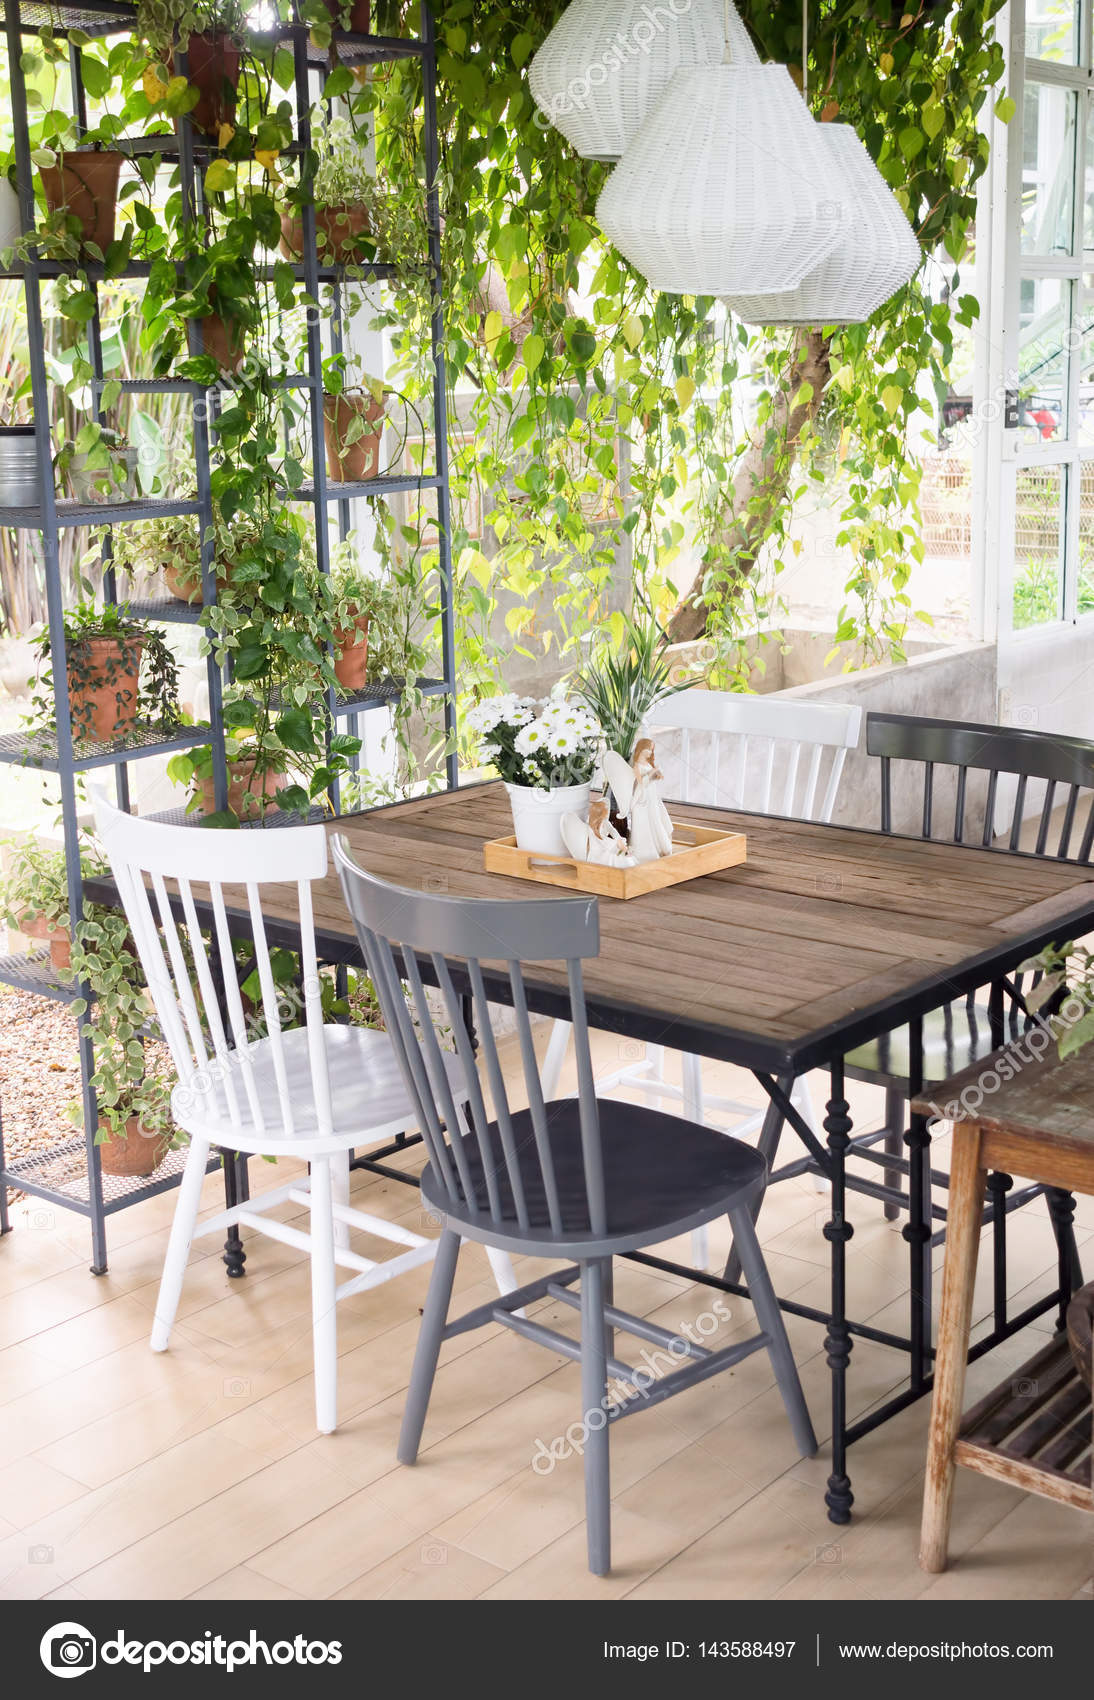 Dining Room Interior With Table Chairs And Plants Against Big W Stock Photo C Scorpionce 143588497